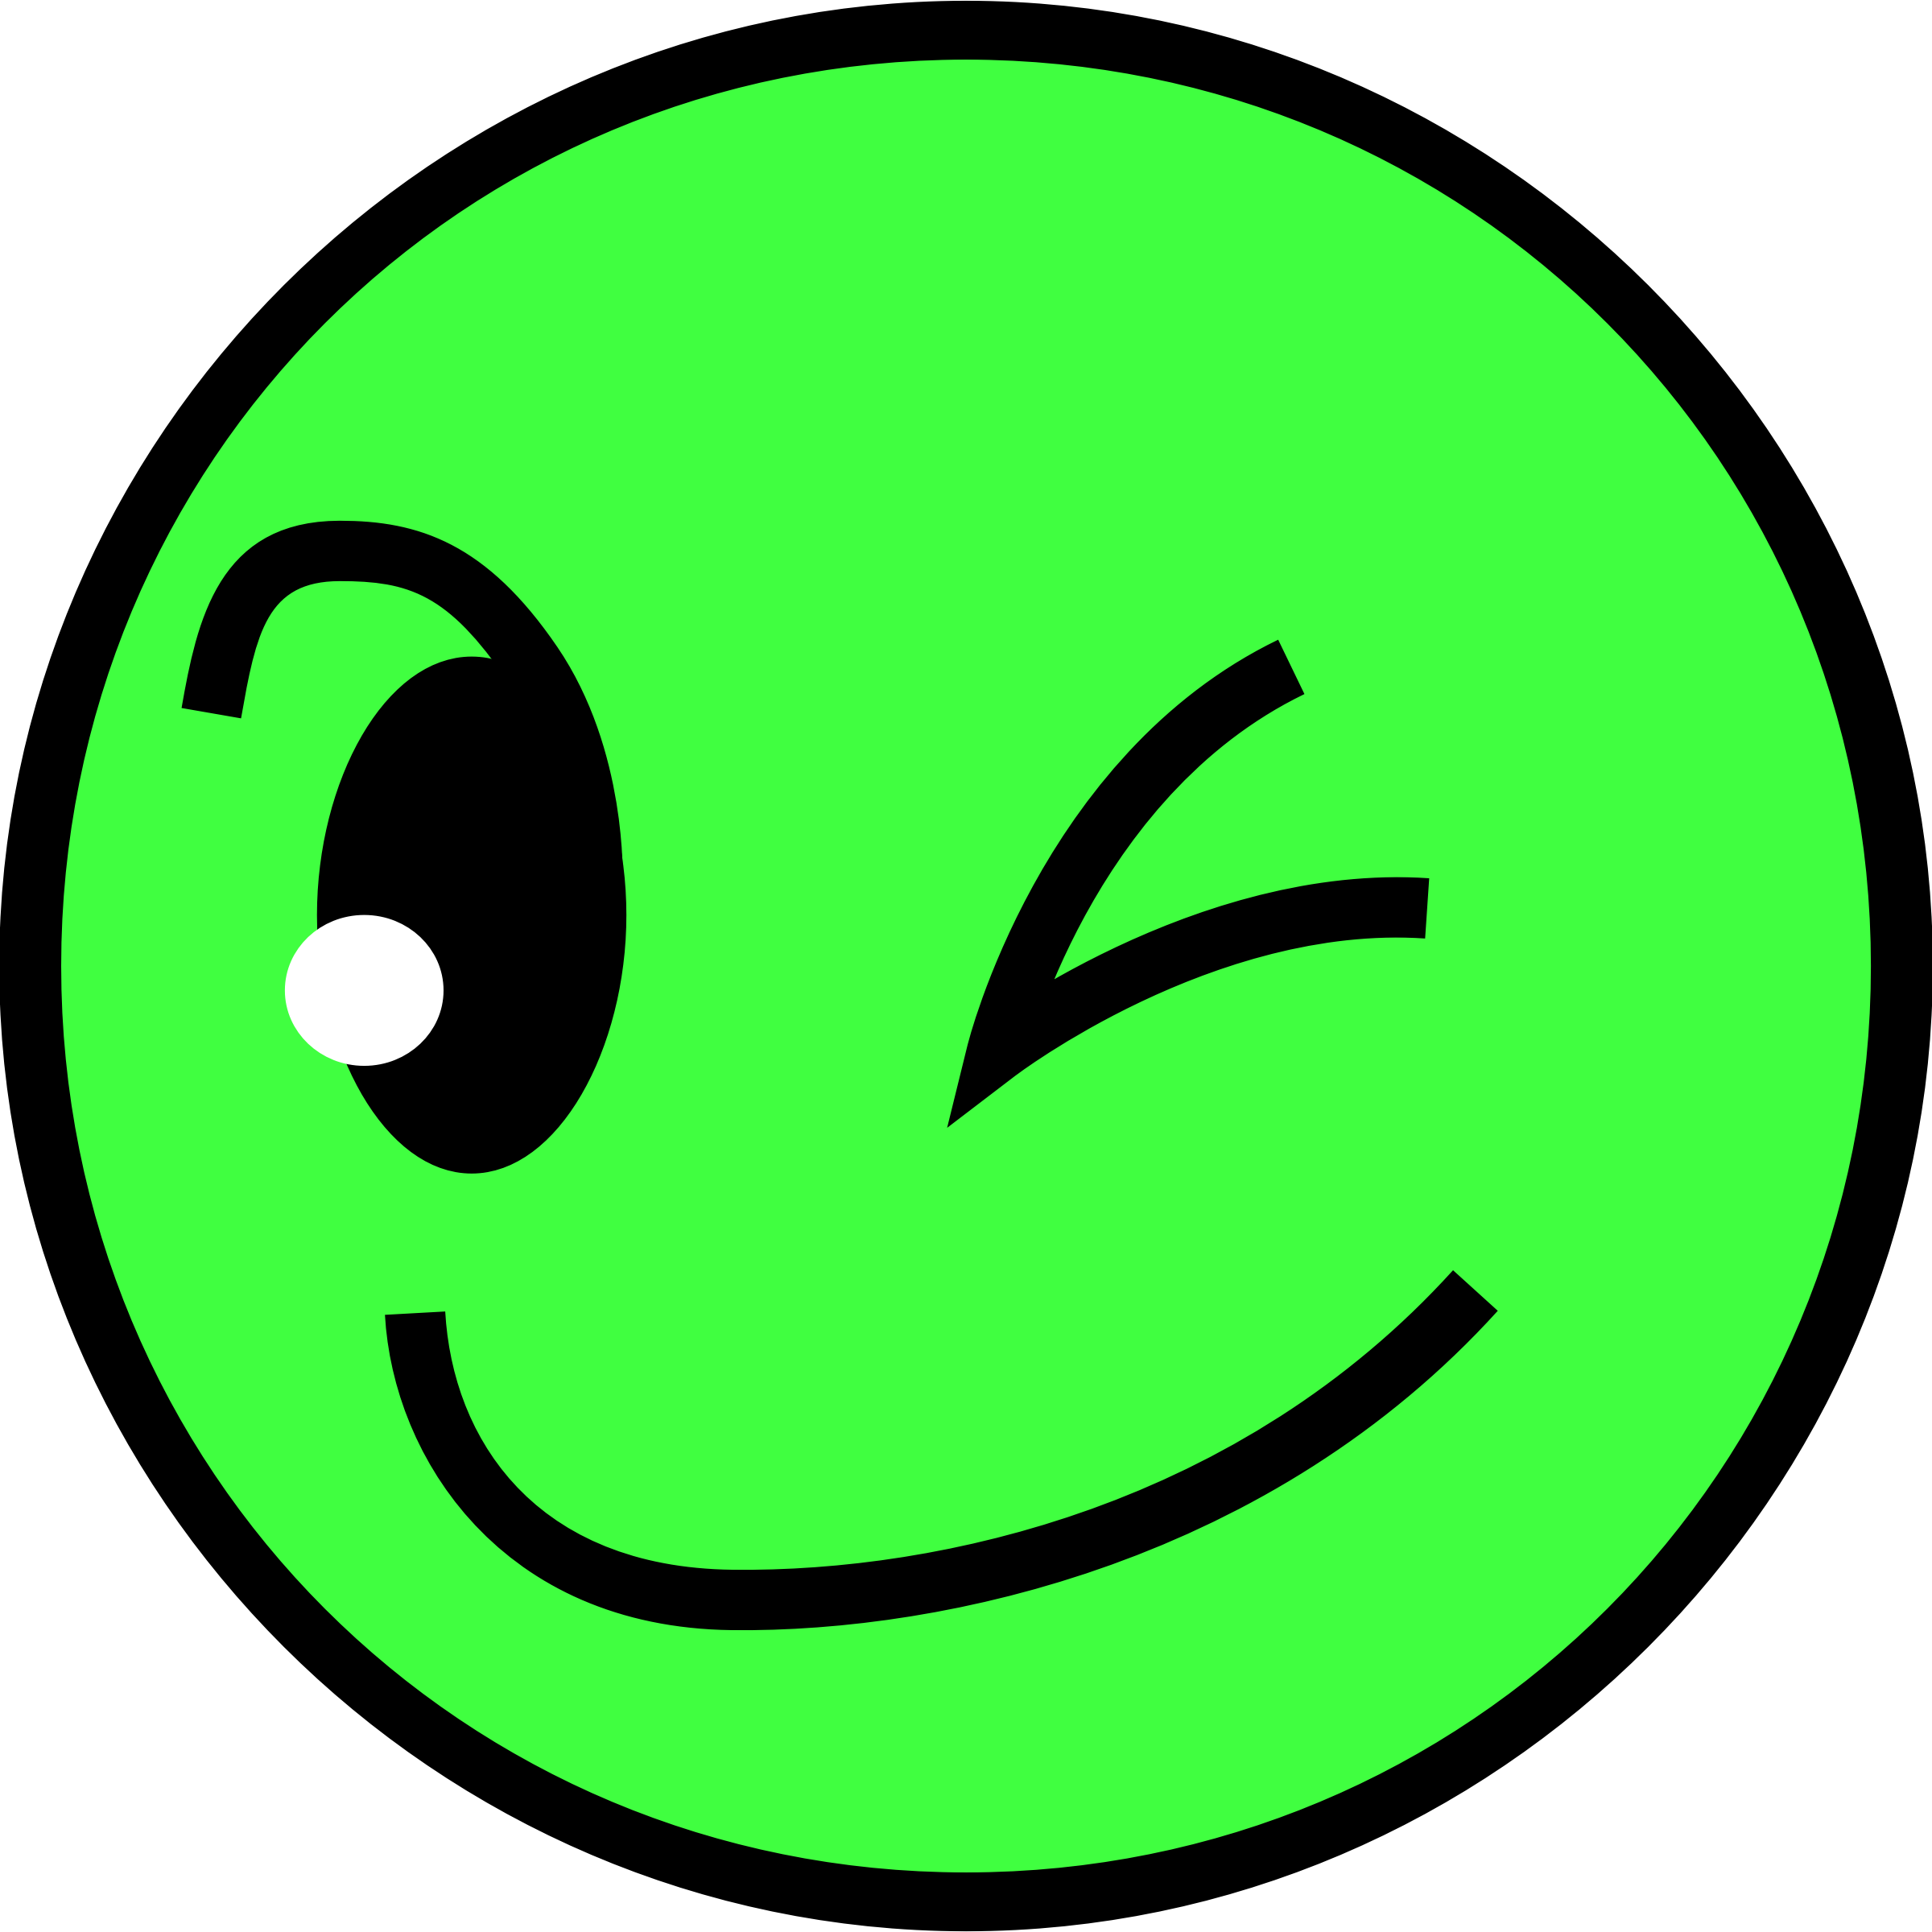 Clipart - Smiling face